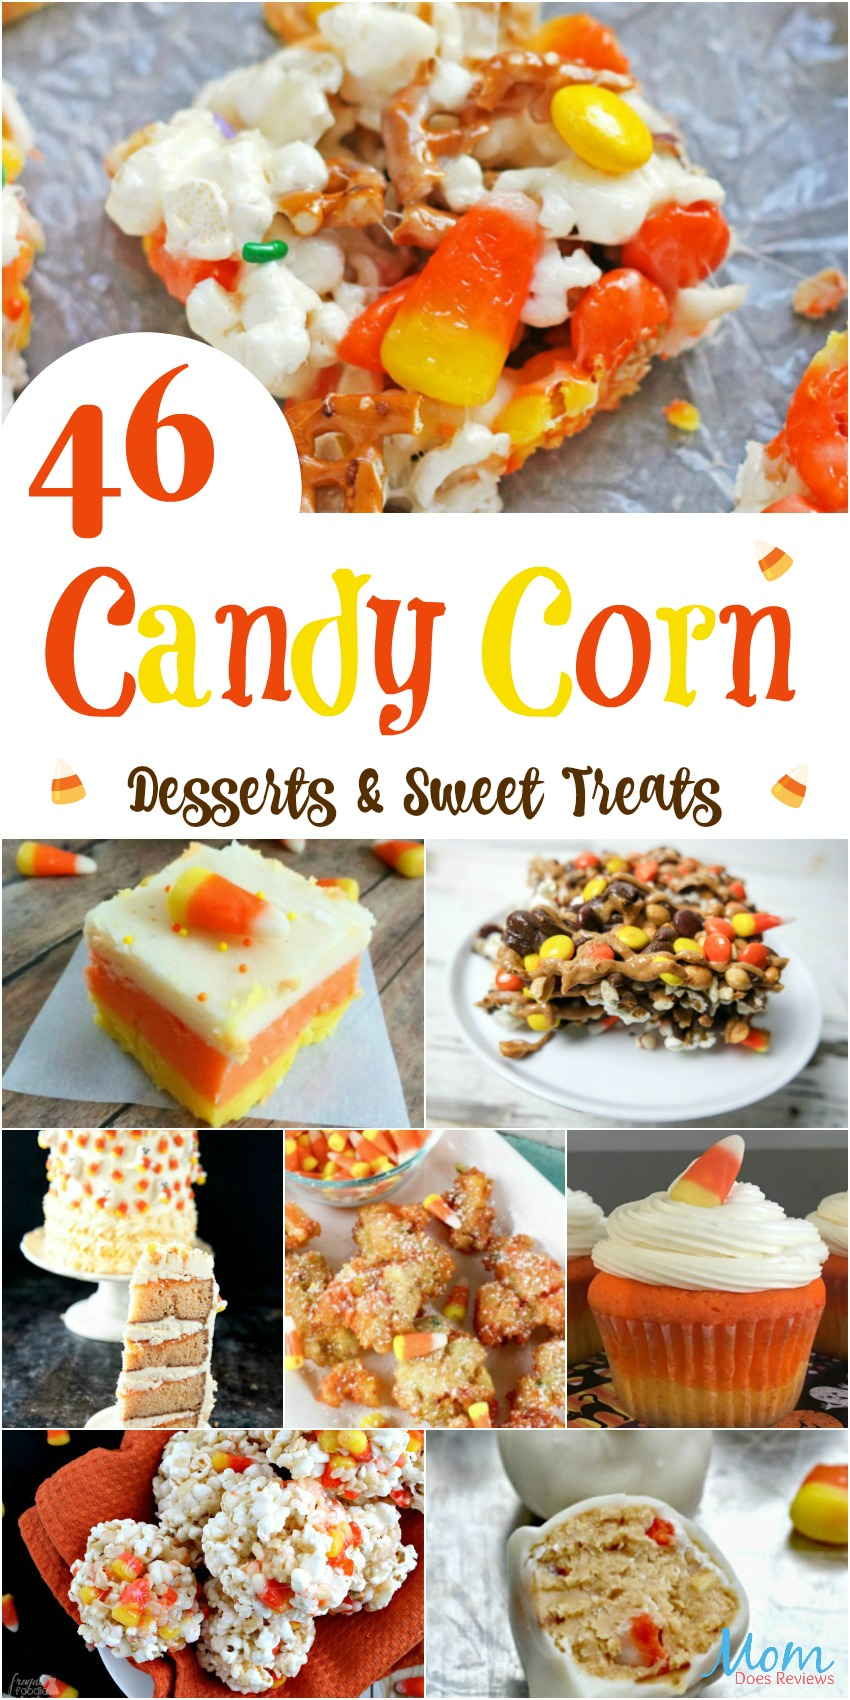 46 Candy Corn Desserts & Sweet Treats Perfect for Fall #recipes #sweets #halloween